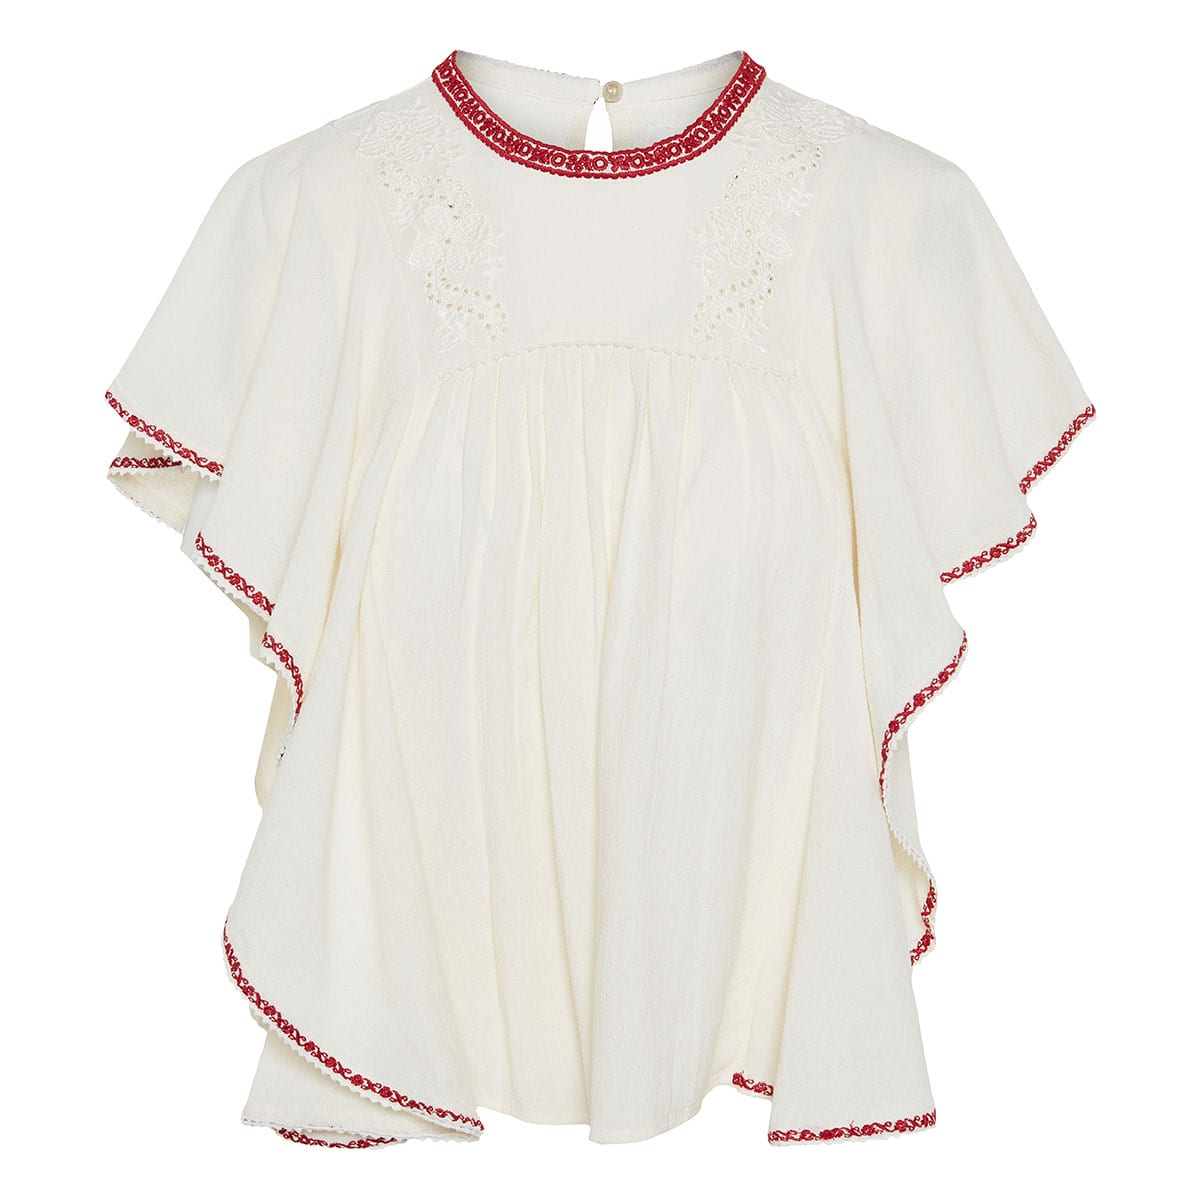 Embroidered ruffled cotton top